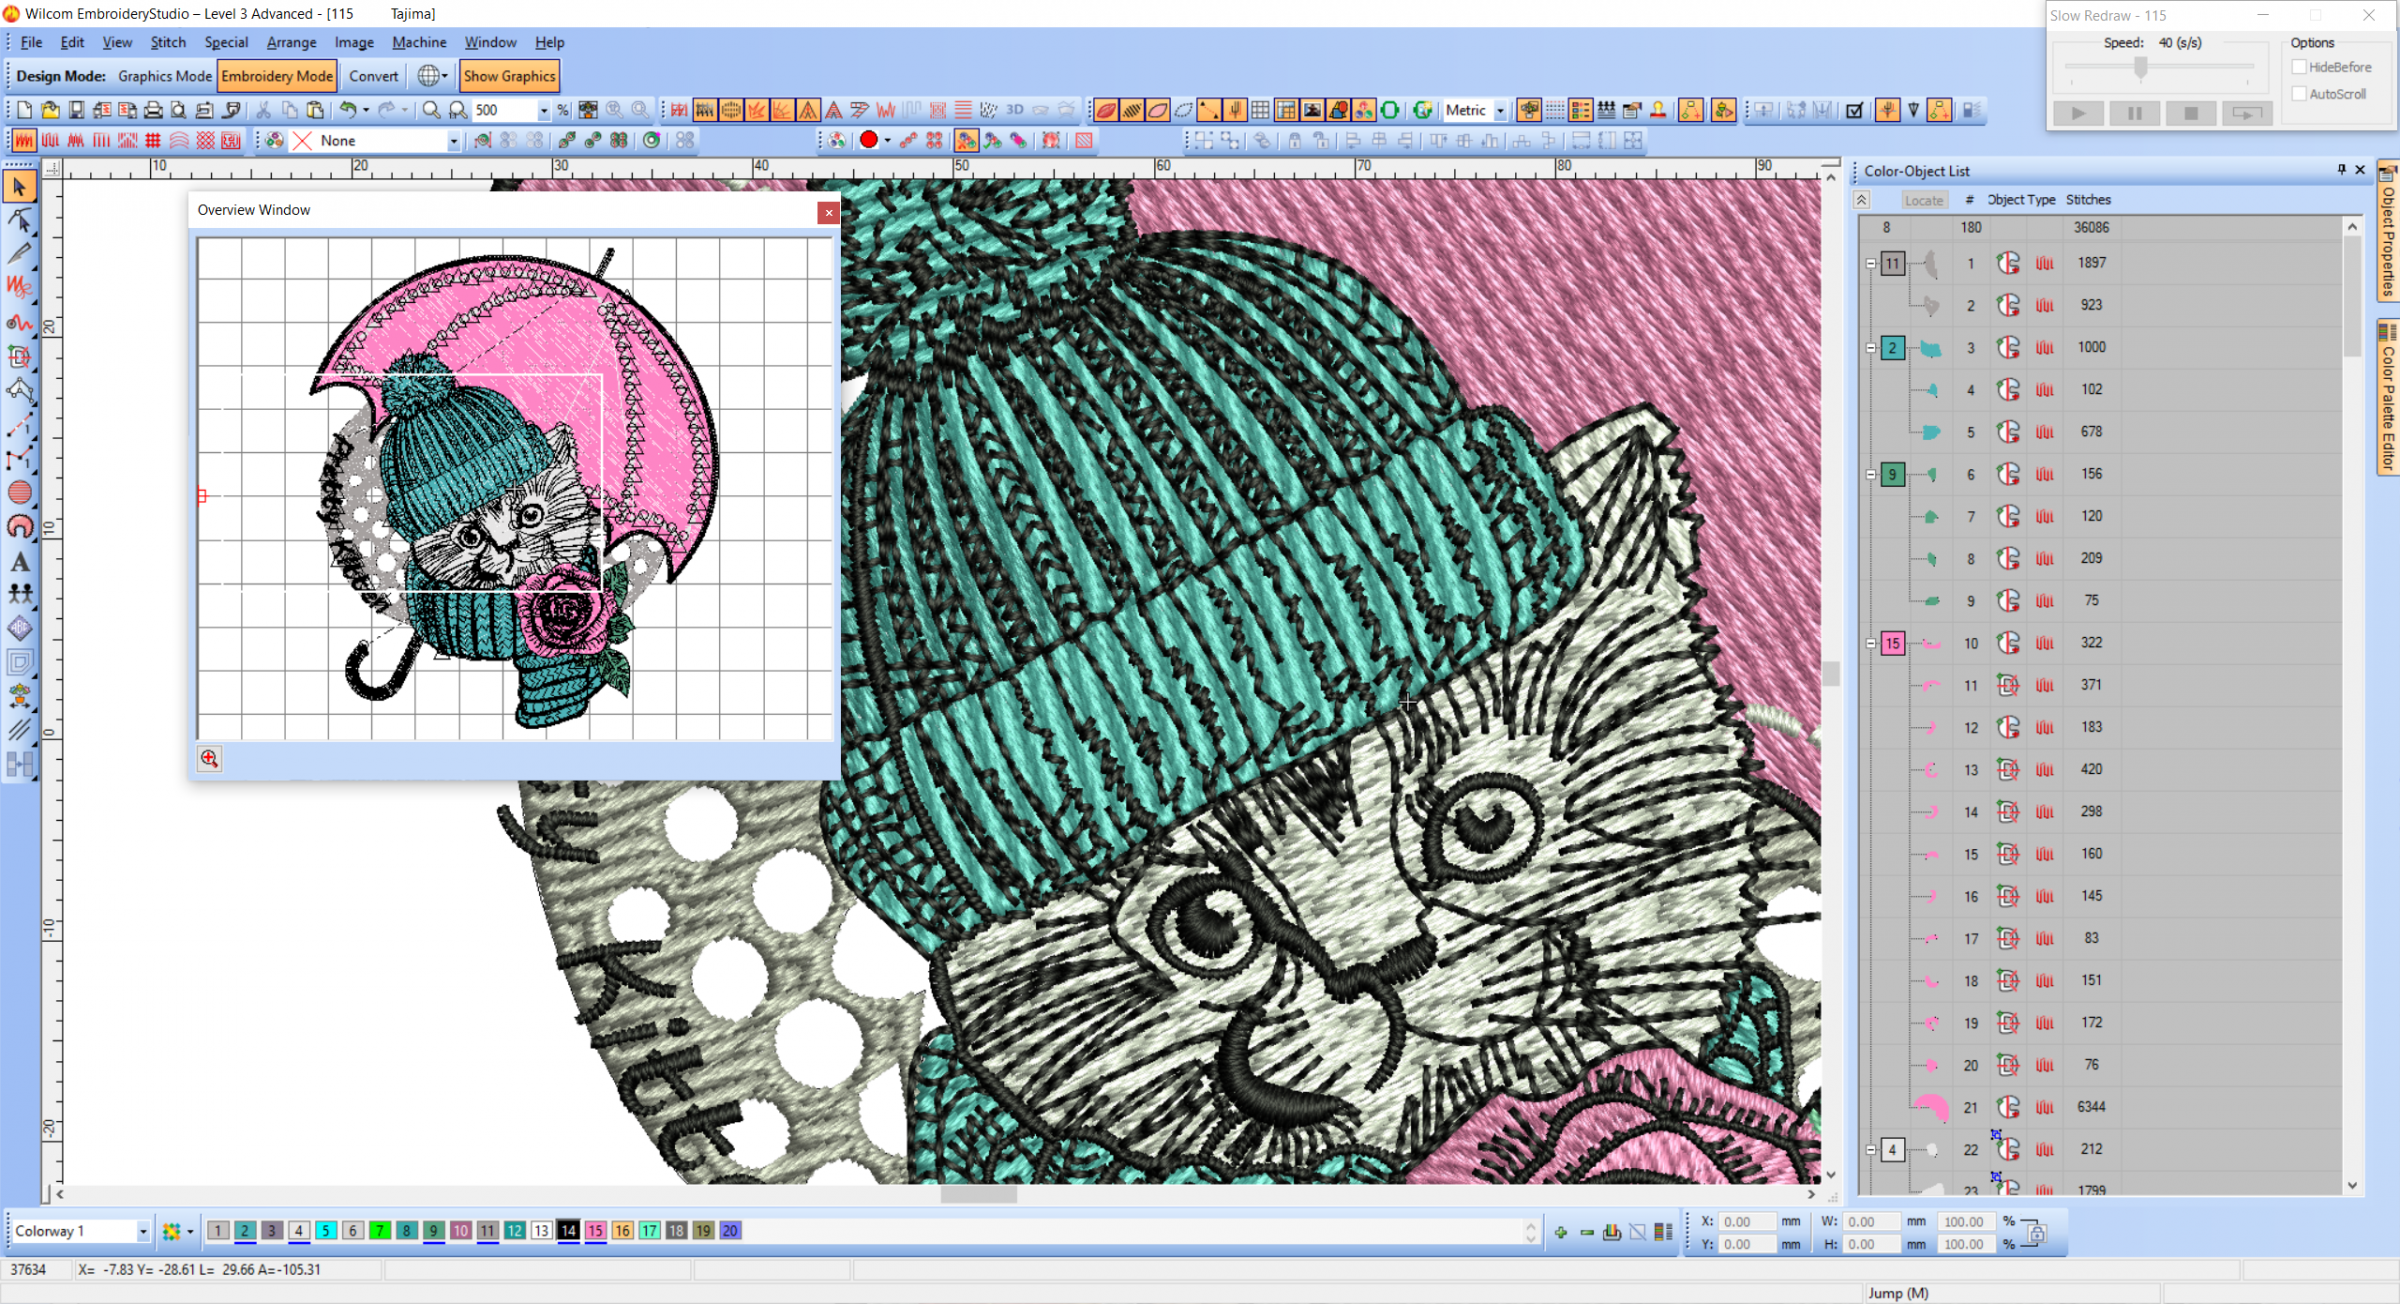 Pretty kitty Wilcom preview embroidery design